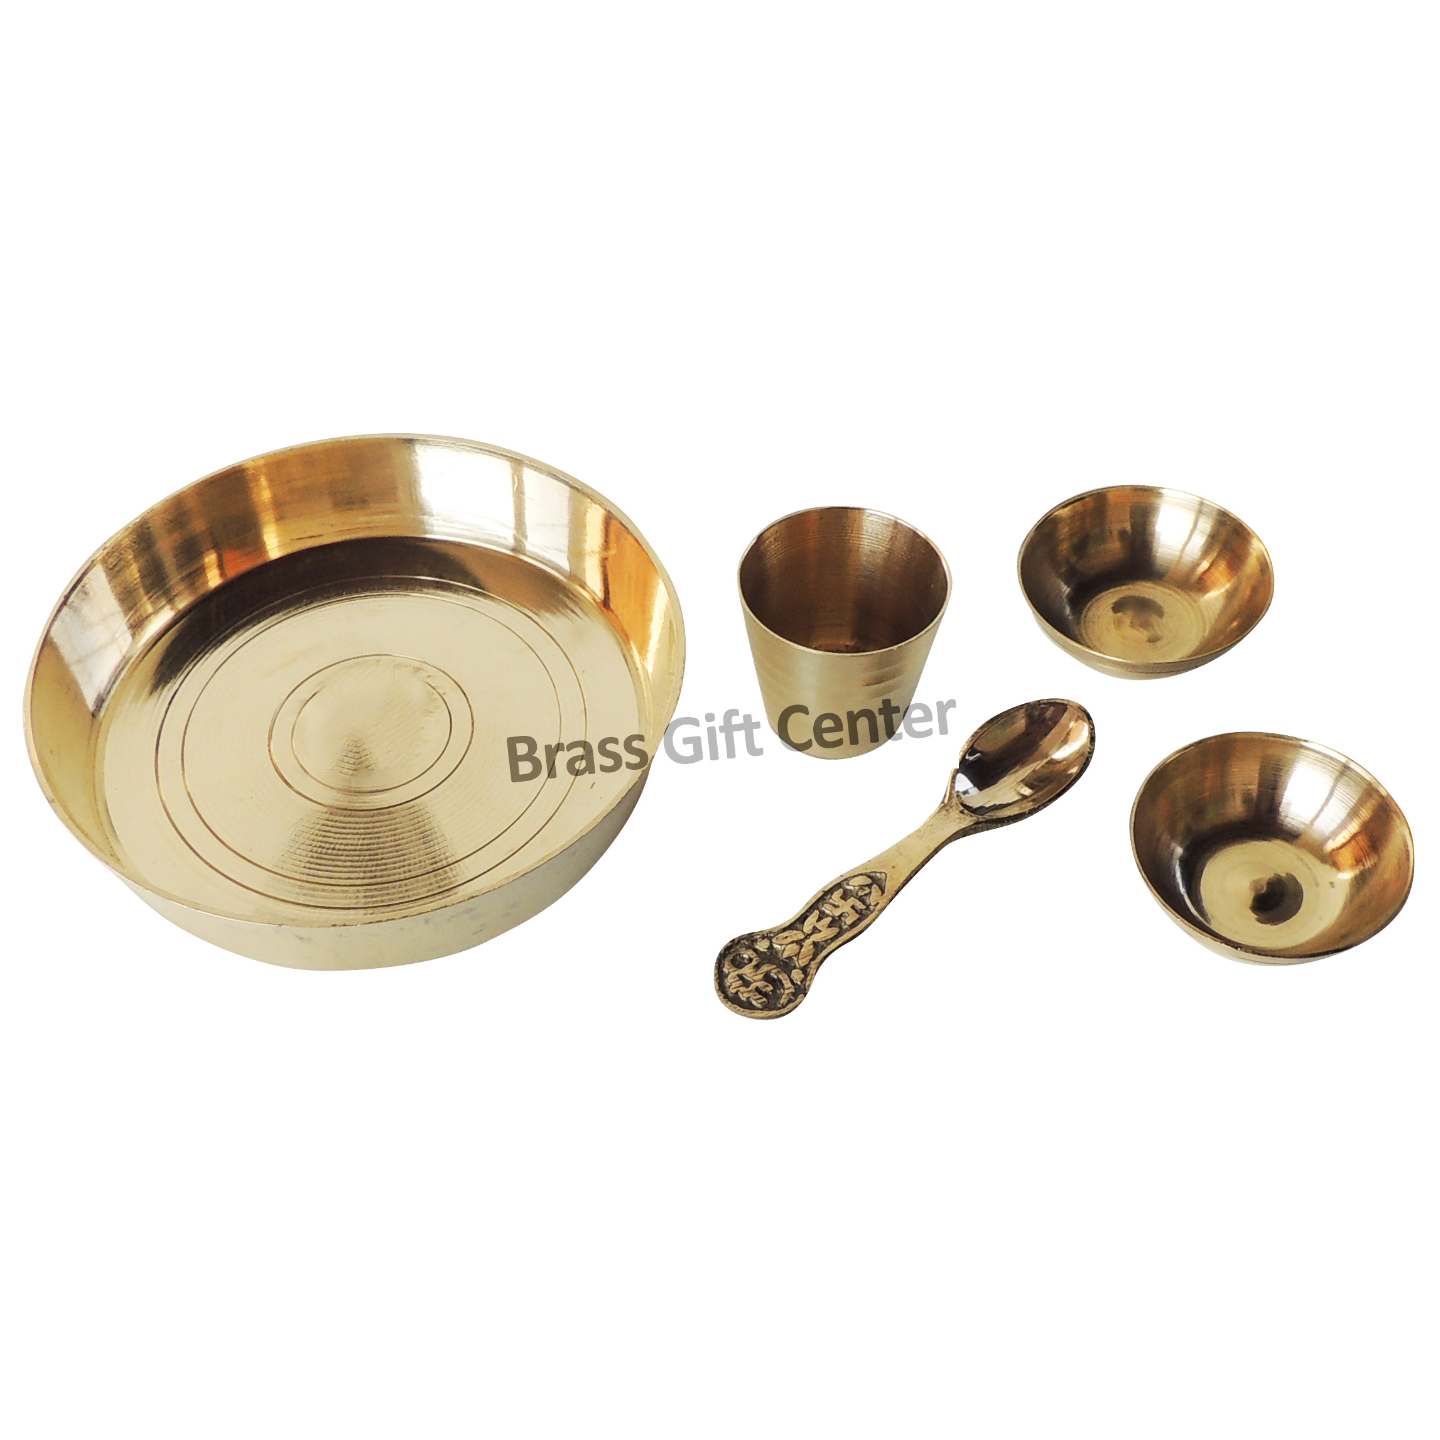 Brass Laddu Gopal Bhog Thali Set, Length  4 Inch Z460 F